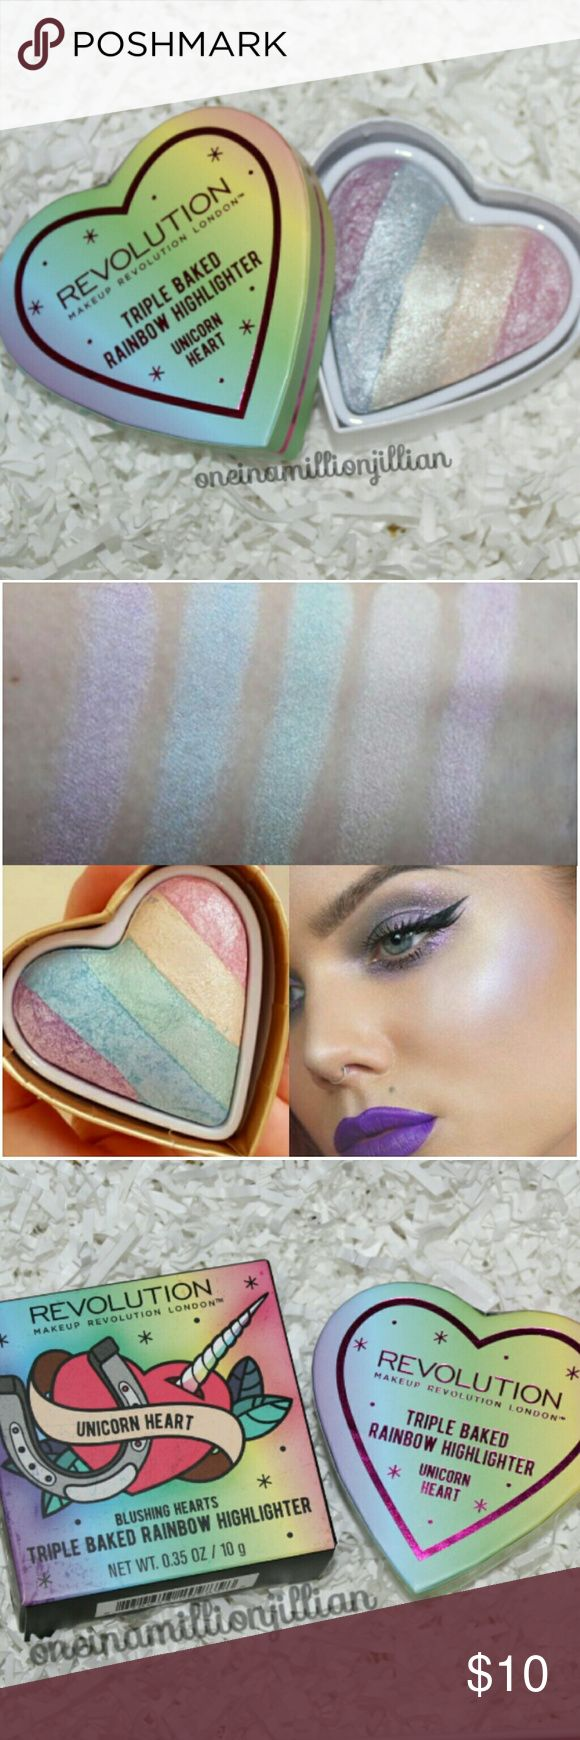 LAST ONE! Makeup Rev Rainbow Highlighting Powder New in